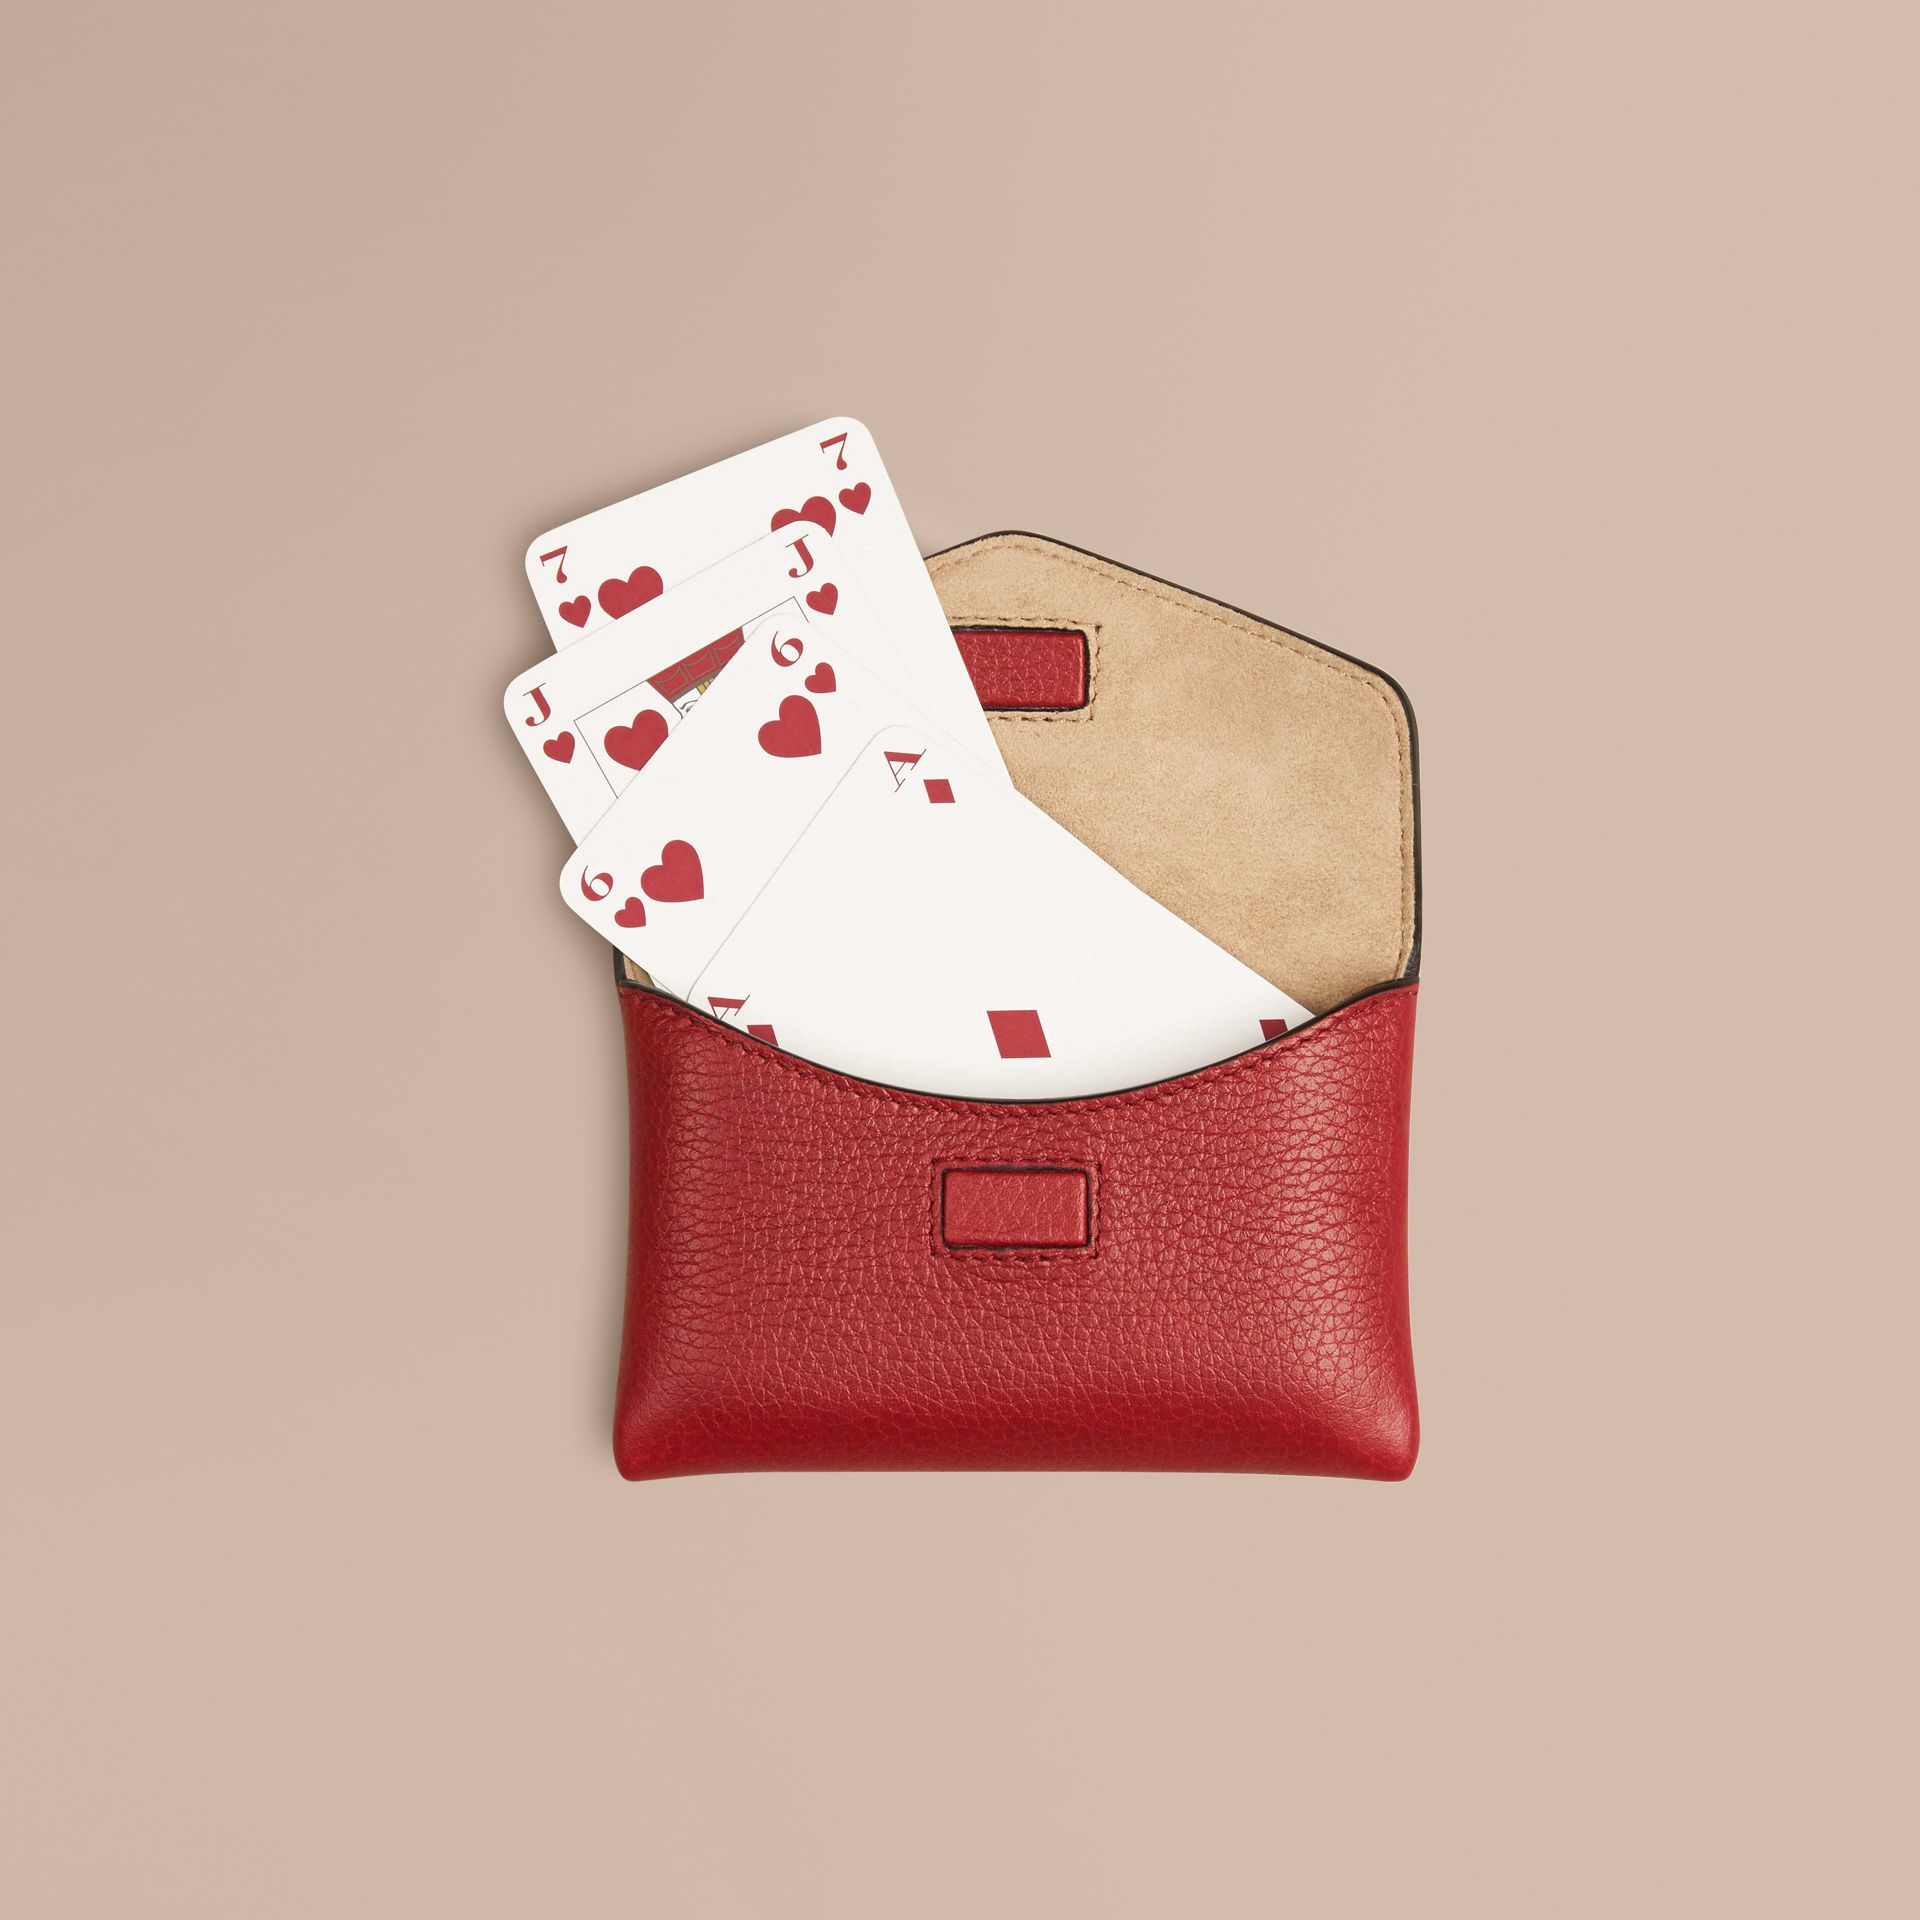 Grainy Leather Playing Card Case in Parade Red | Burberry - gallery image 1